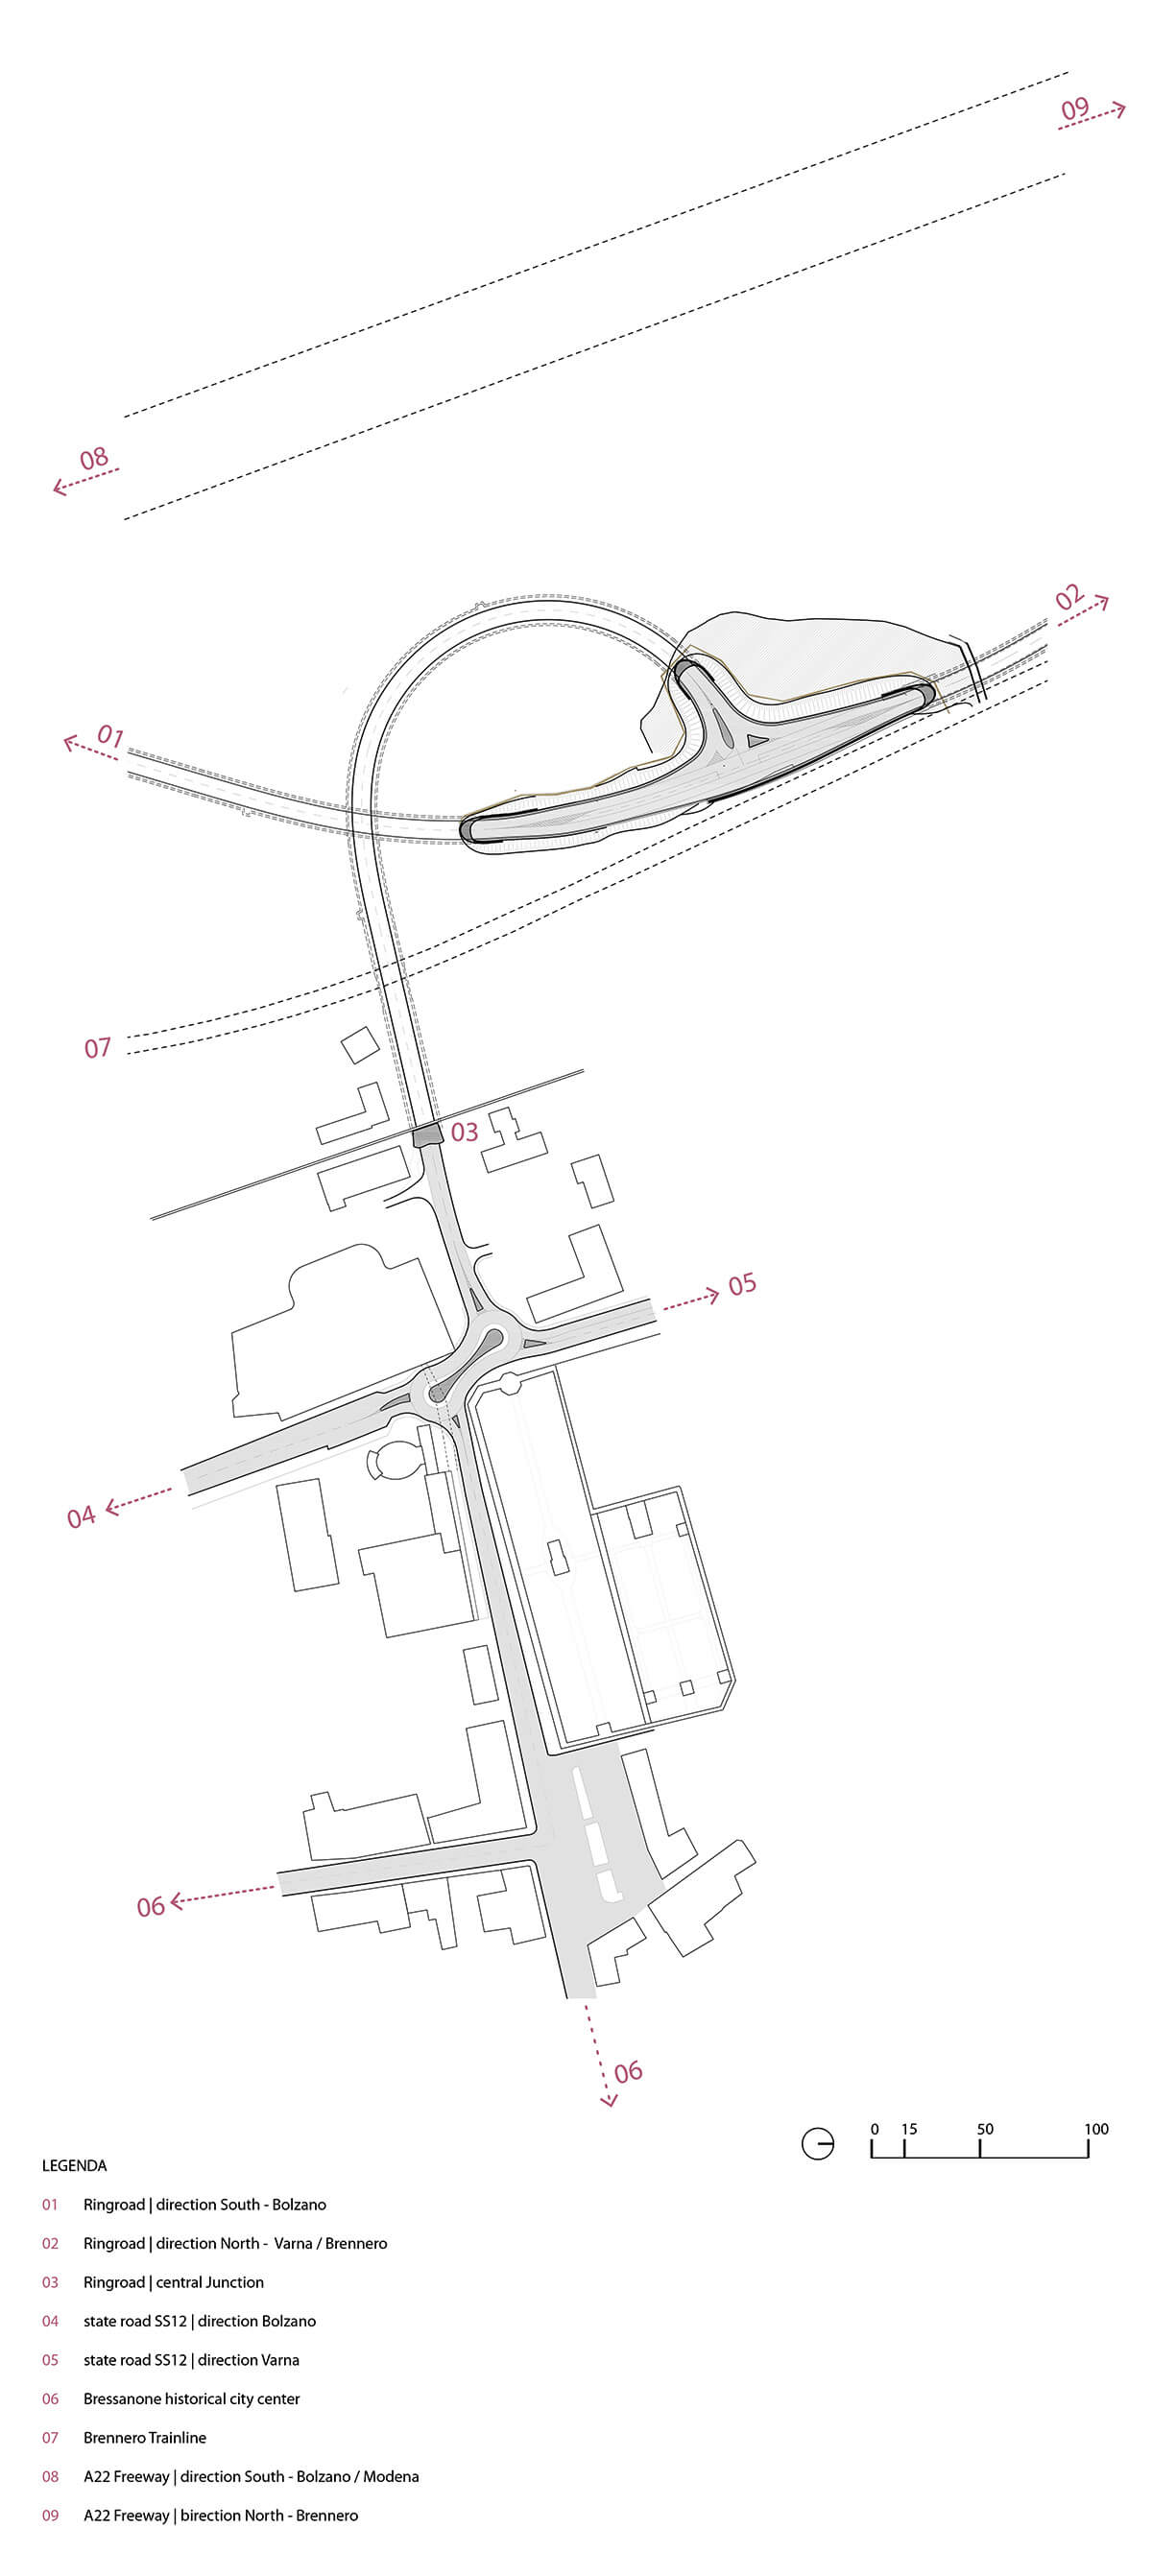 The plan of the Bressanone-Varna Entry Portal Ring Road | Bressanone-Varna Entry Portal Ring Road by Modus Architects | STIRworld